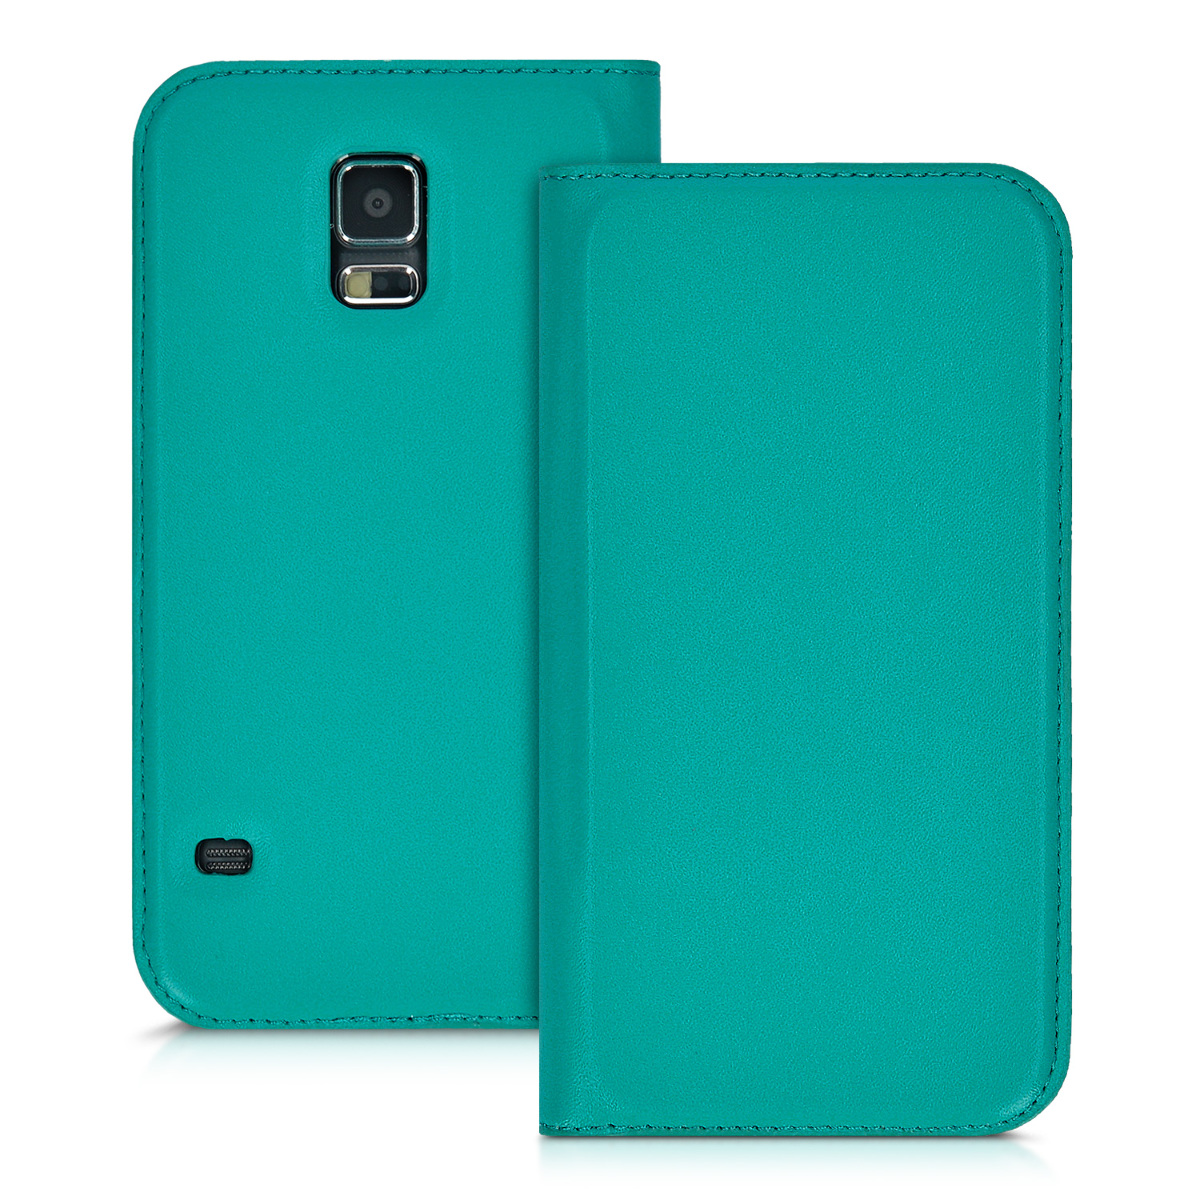 kwmobile-HOUSSE-DE-PROTECTION-POUR-SAMSUNG-GALAXY-S5-S5-NEO-S5-LTE-S5-DUOS